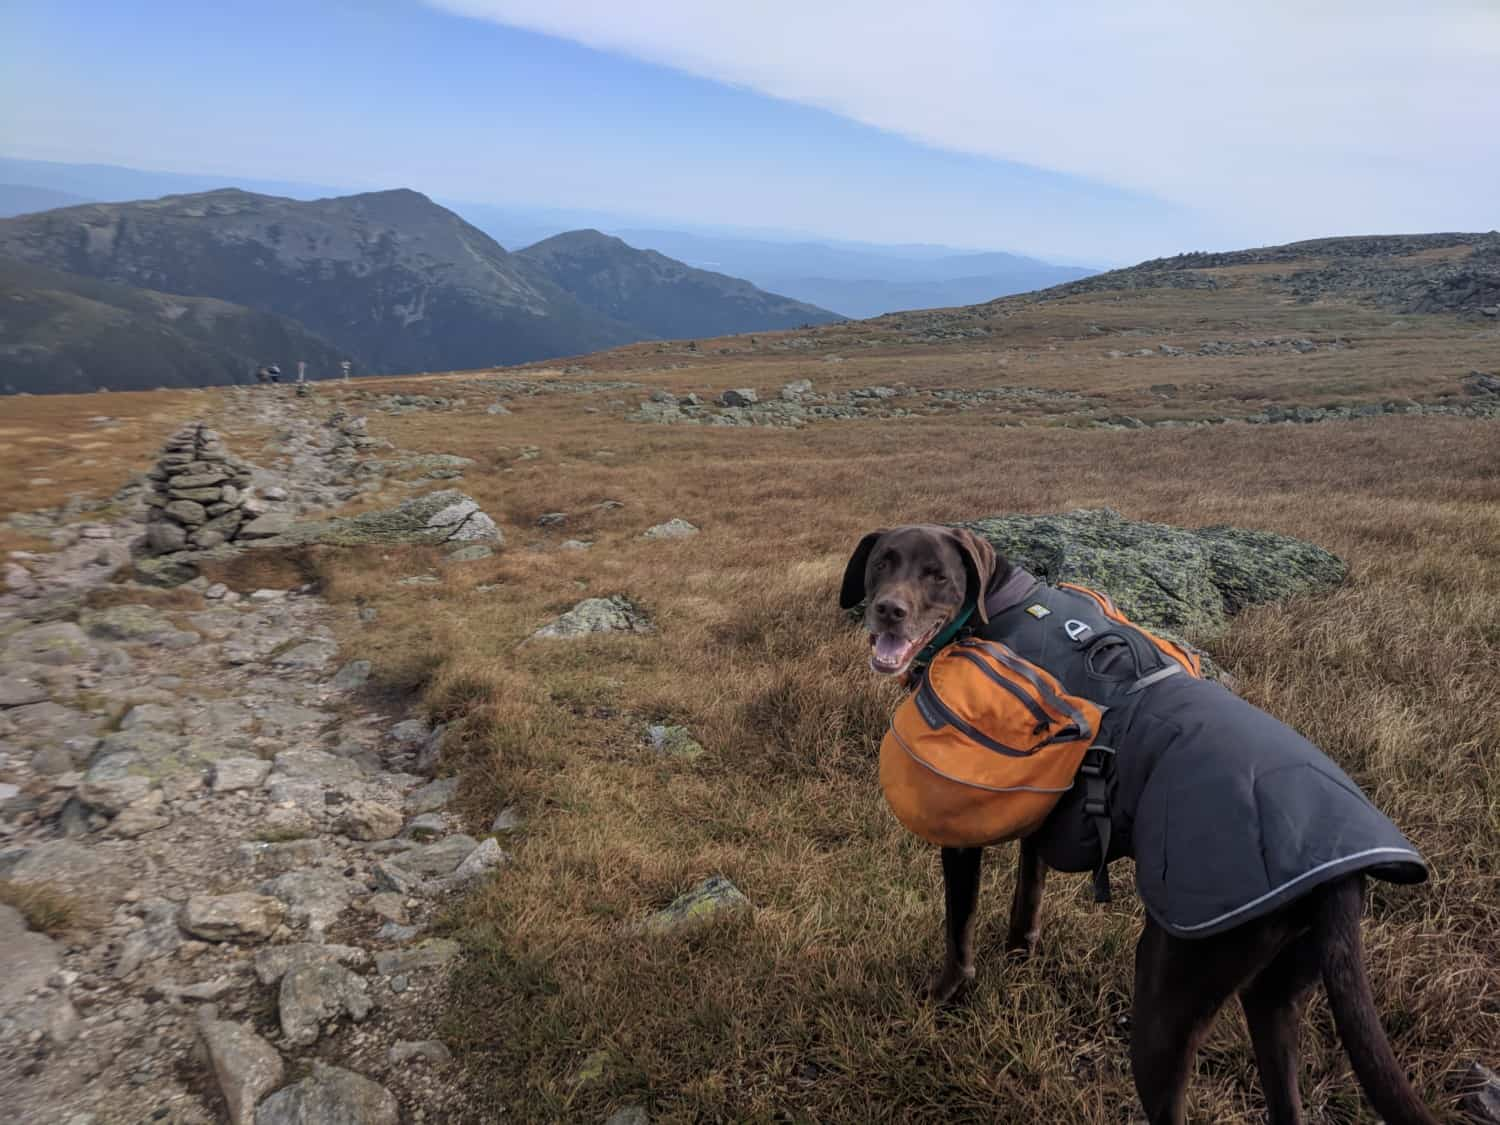 Toby the dog hiking the pet friendly Appalachian Trail in New Hampshire